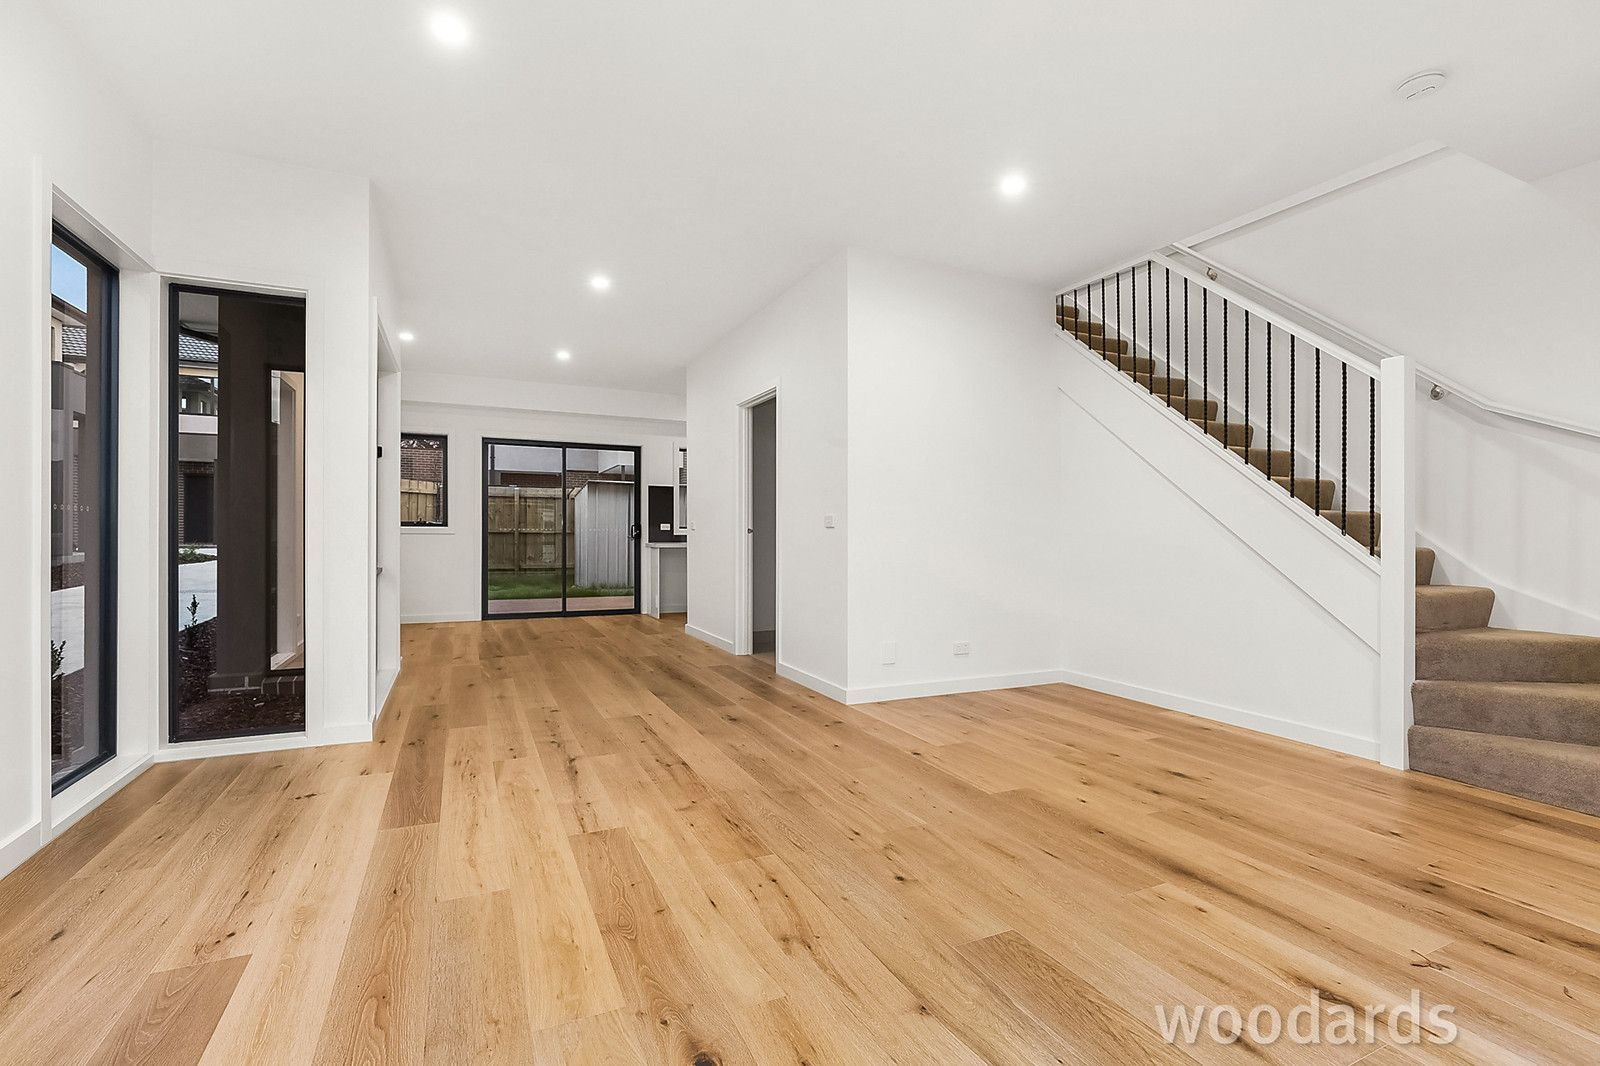 7/12-14 Nonna Street, Oakleigh East VIC 3166, Image 1